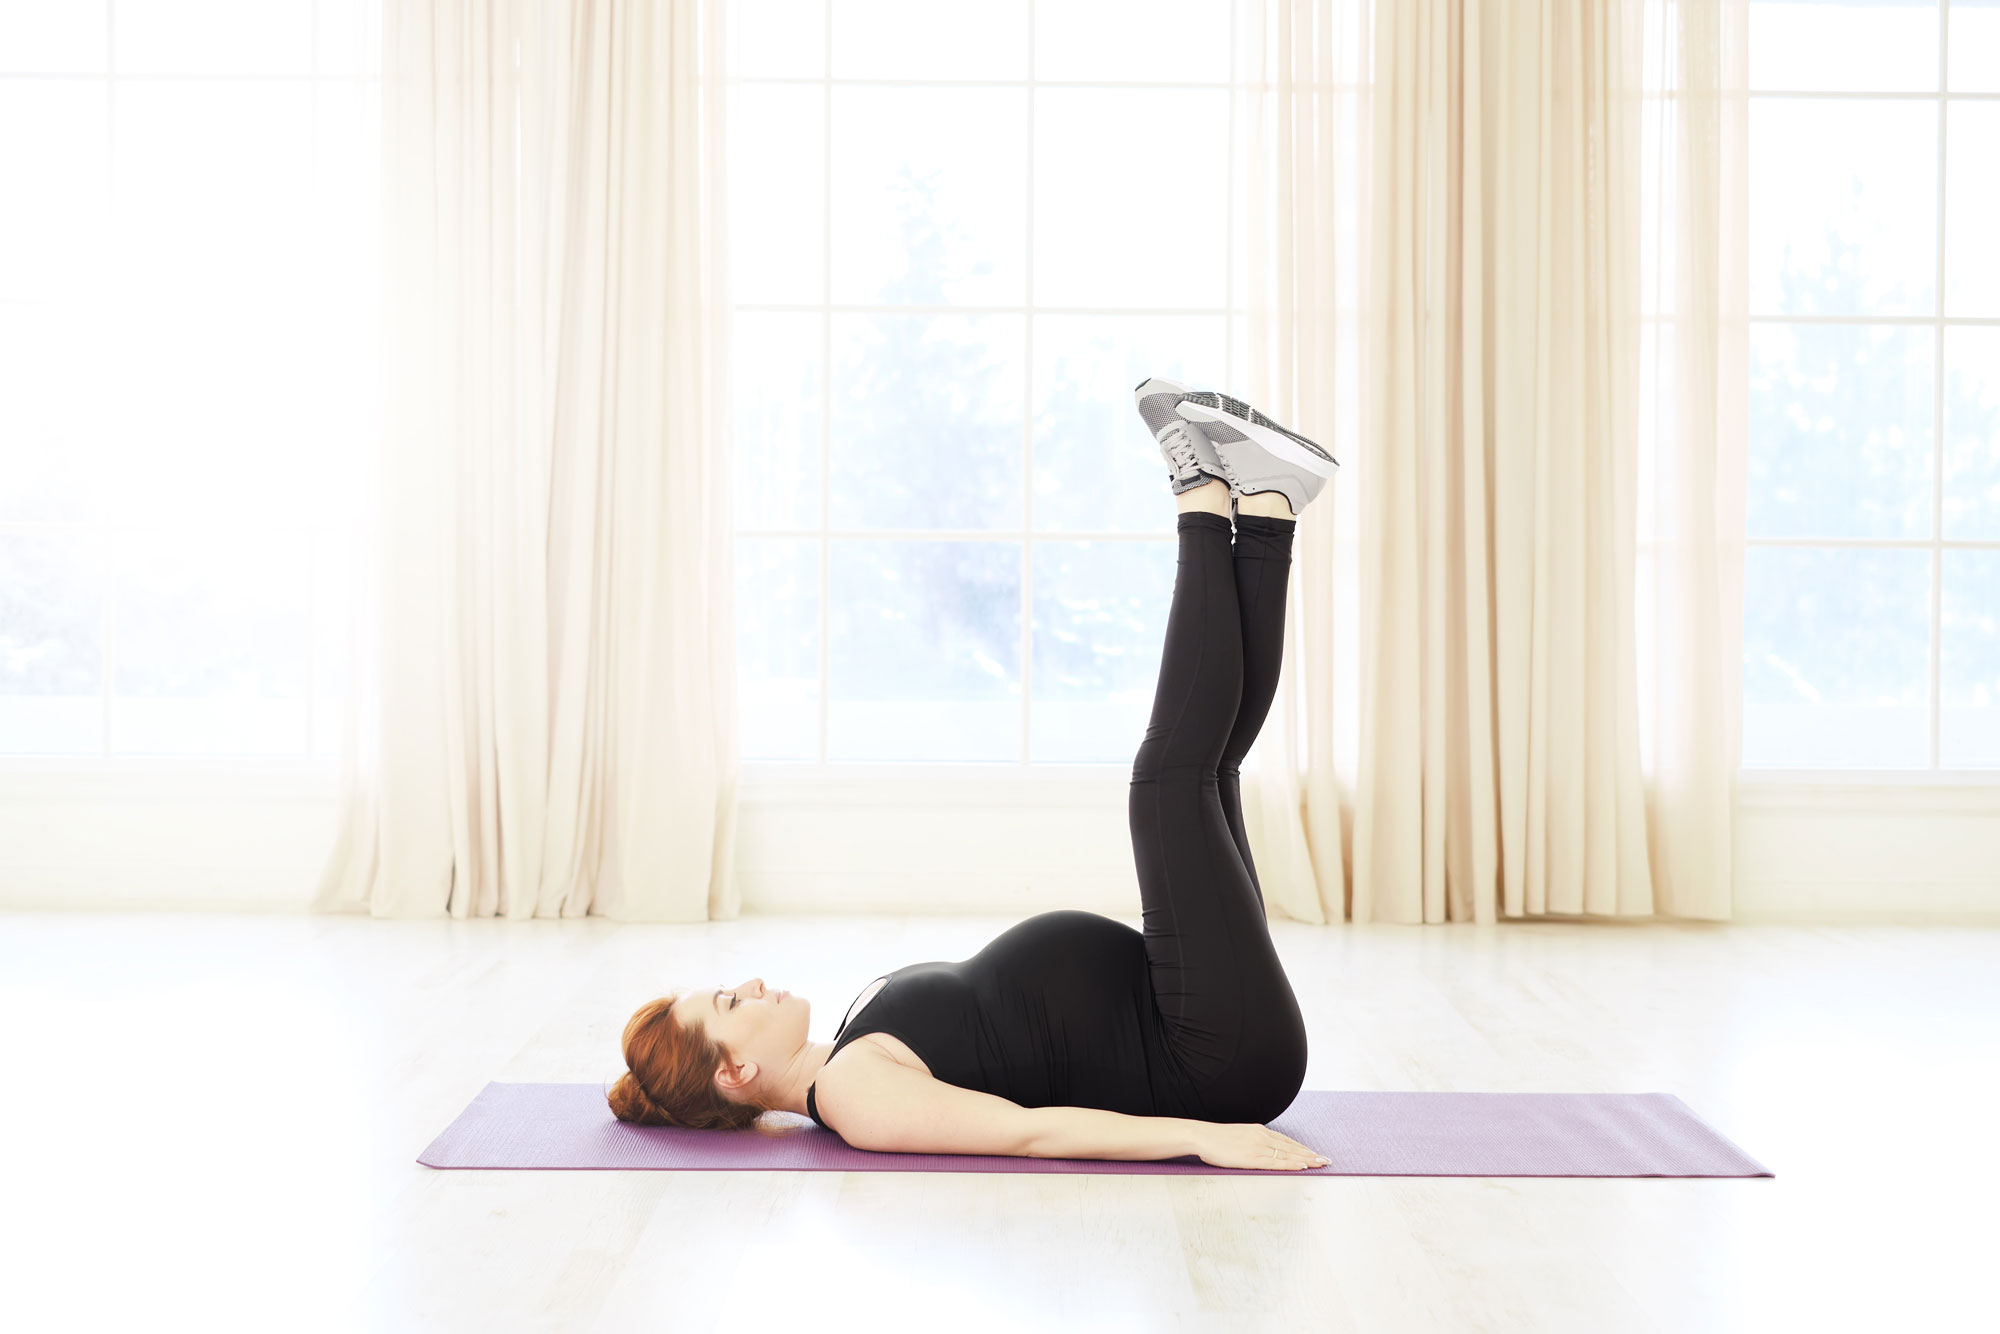 pregnant woman on mat with legs in air doing pilates